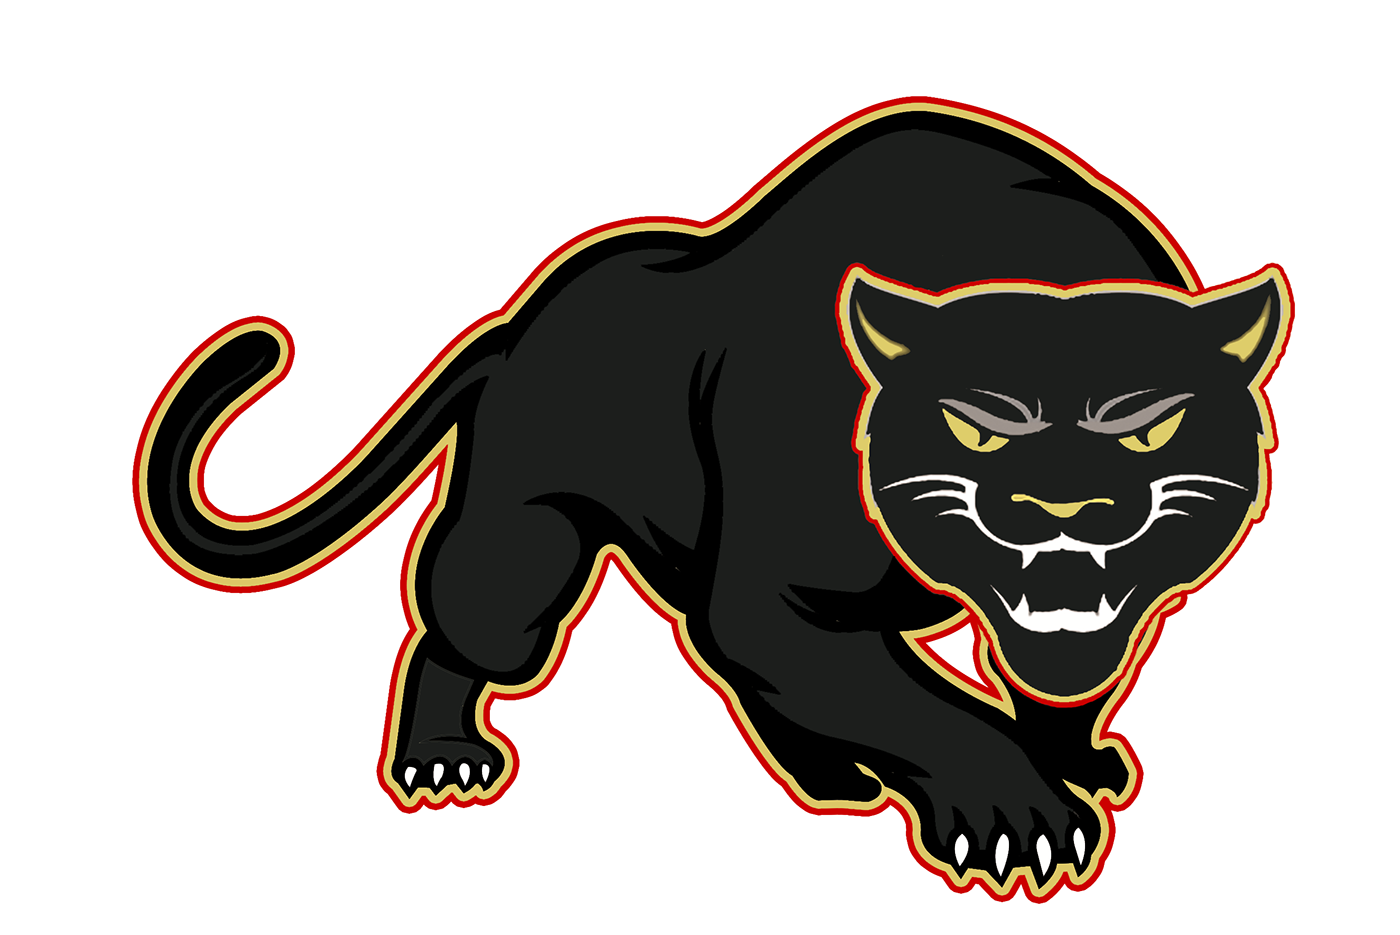 Panther with football clipart graphic transparent library Walker University Football 2018 on Behance graphic transparent library